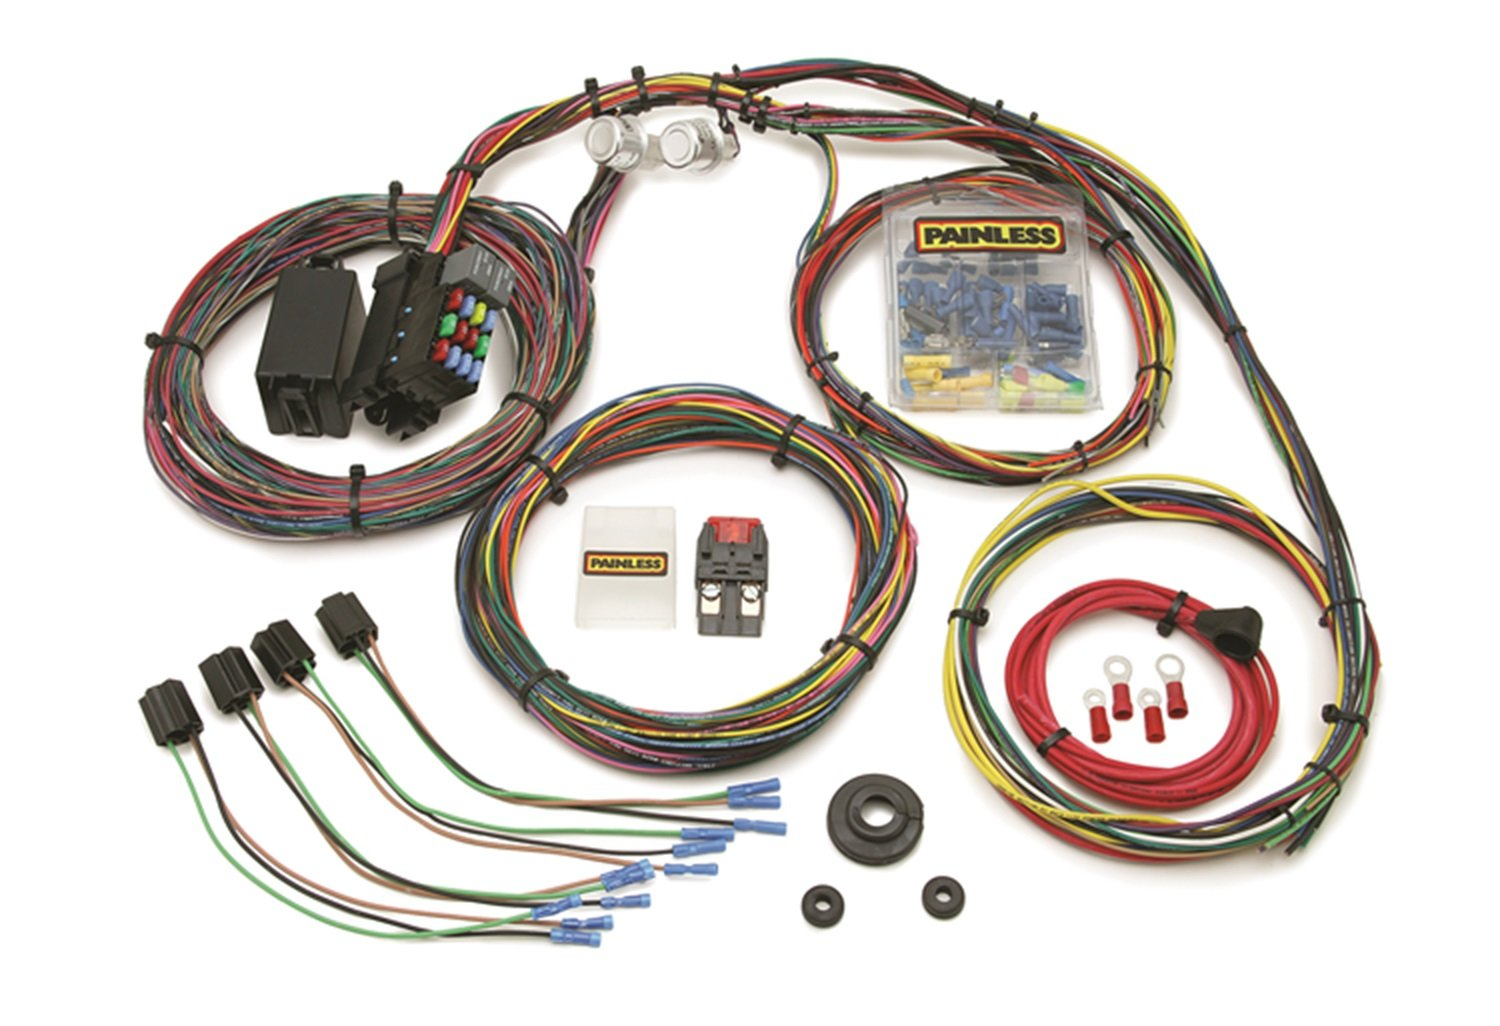 71gWOH5D5zL._SL1500_ amazon com painless 10127 automotive universal wiring harness at reclaimingppi.co